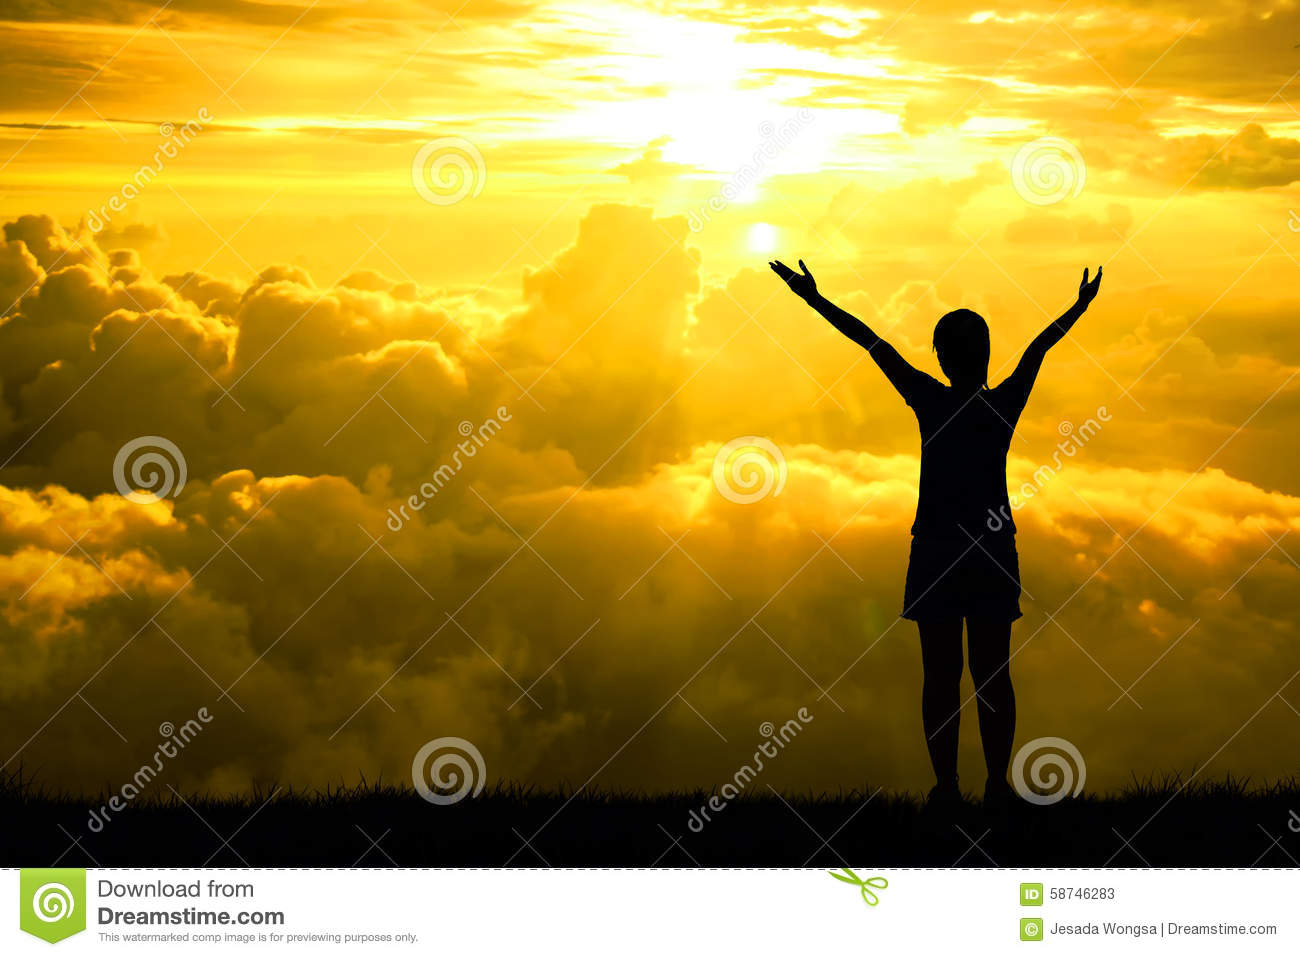 Silhouette or backlit of sport women open arms raised towards on hope sky at sunset light effect ,Concept for life achievements an